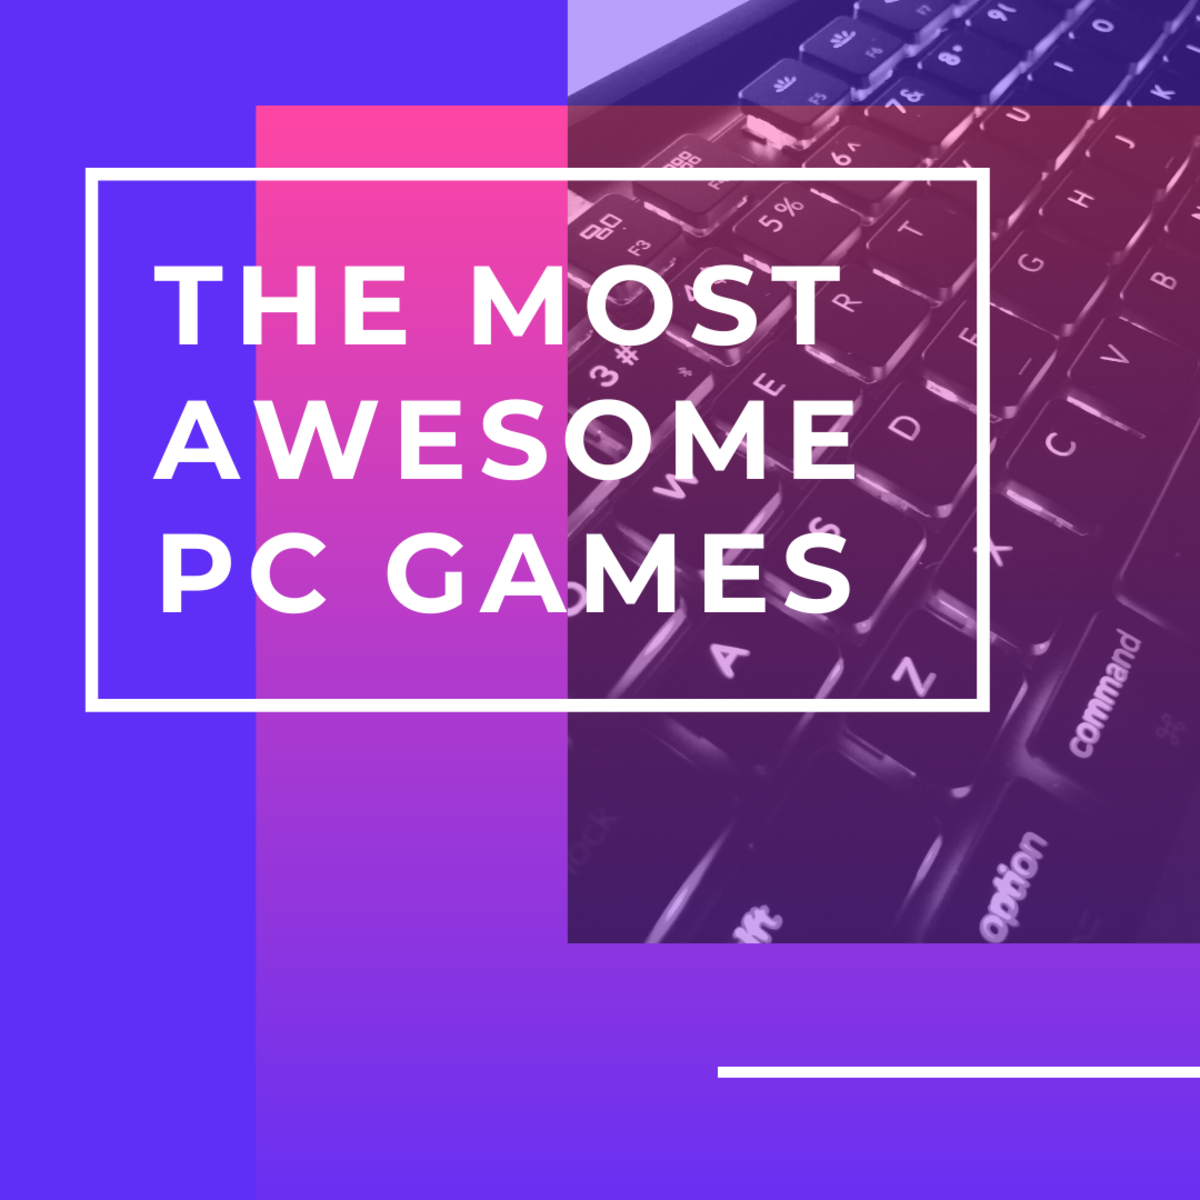 The Top 15 Most Awesome PC Games of All Time